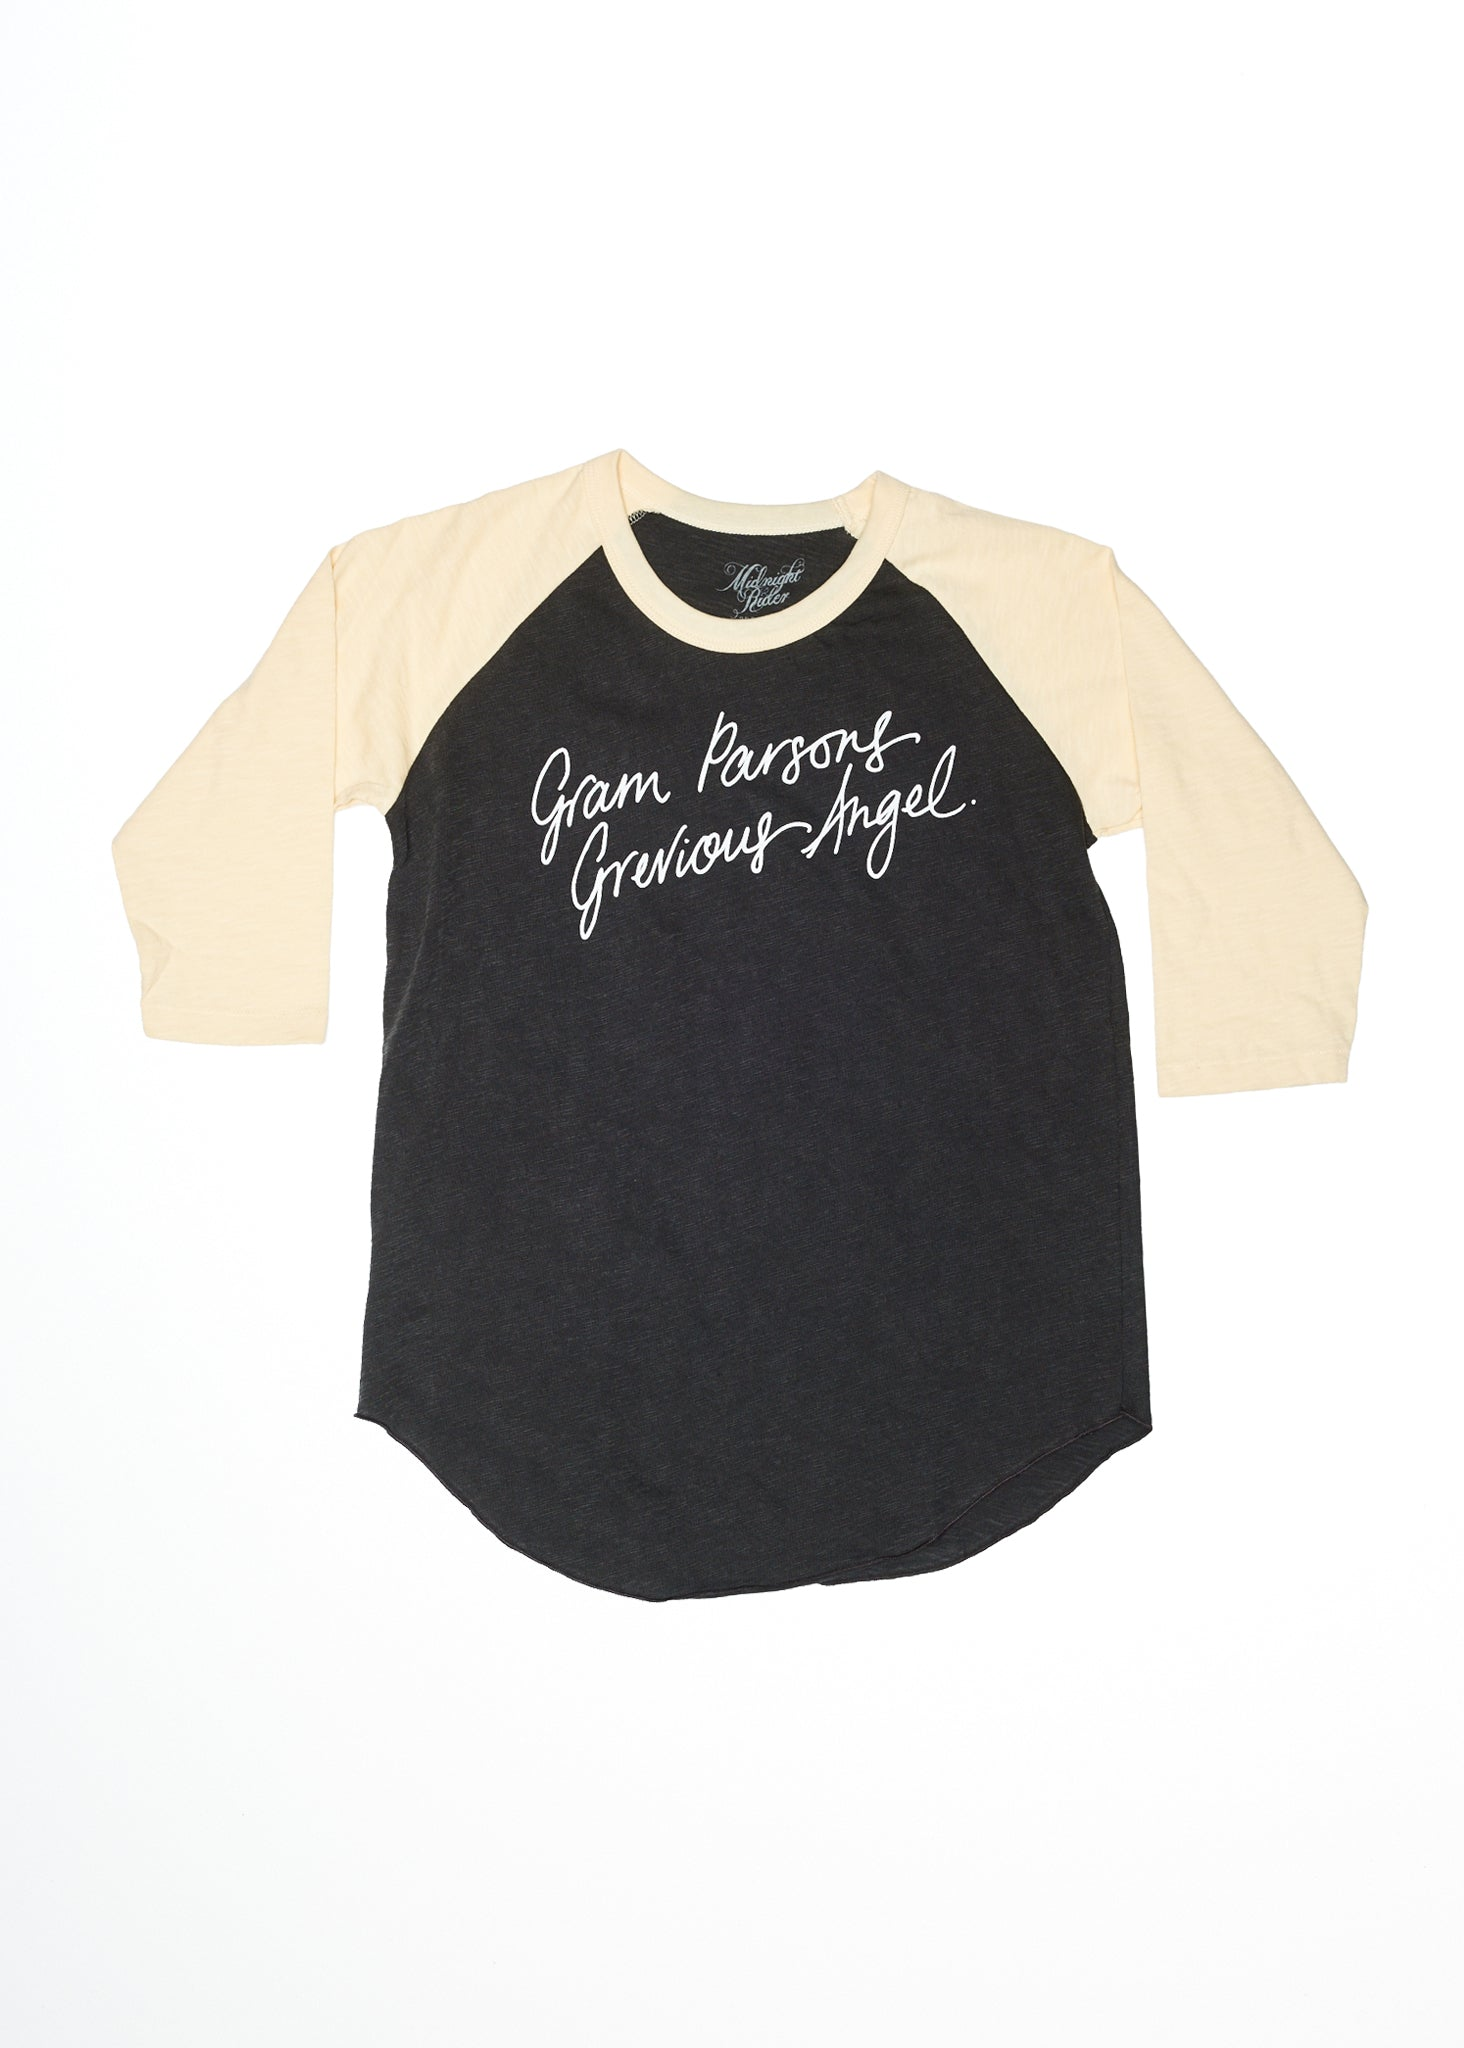 Grevious Angel Baseball Tee - Baseball Tee - Midnight Rider